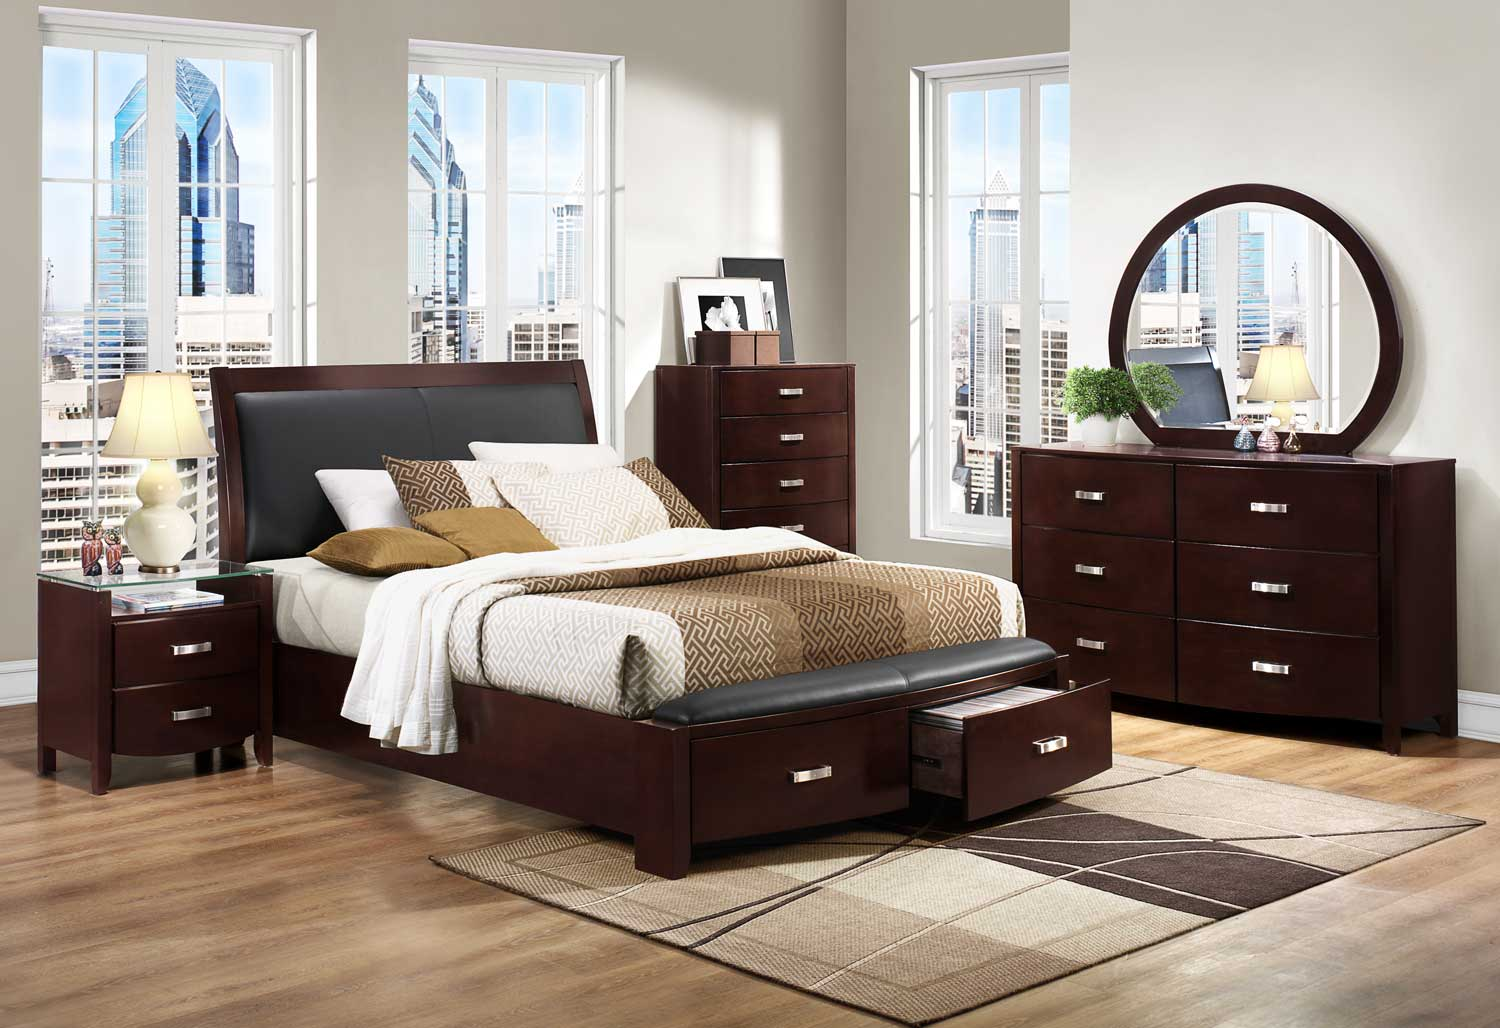 Homelegance lyric platform bedroom set dark espresso for Bedroom furniture